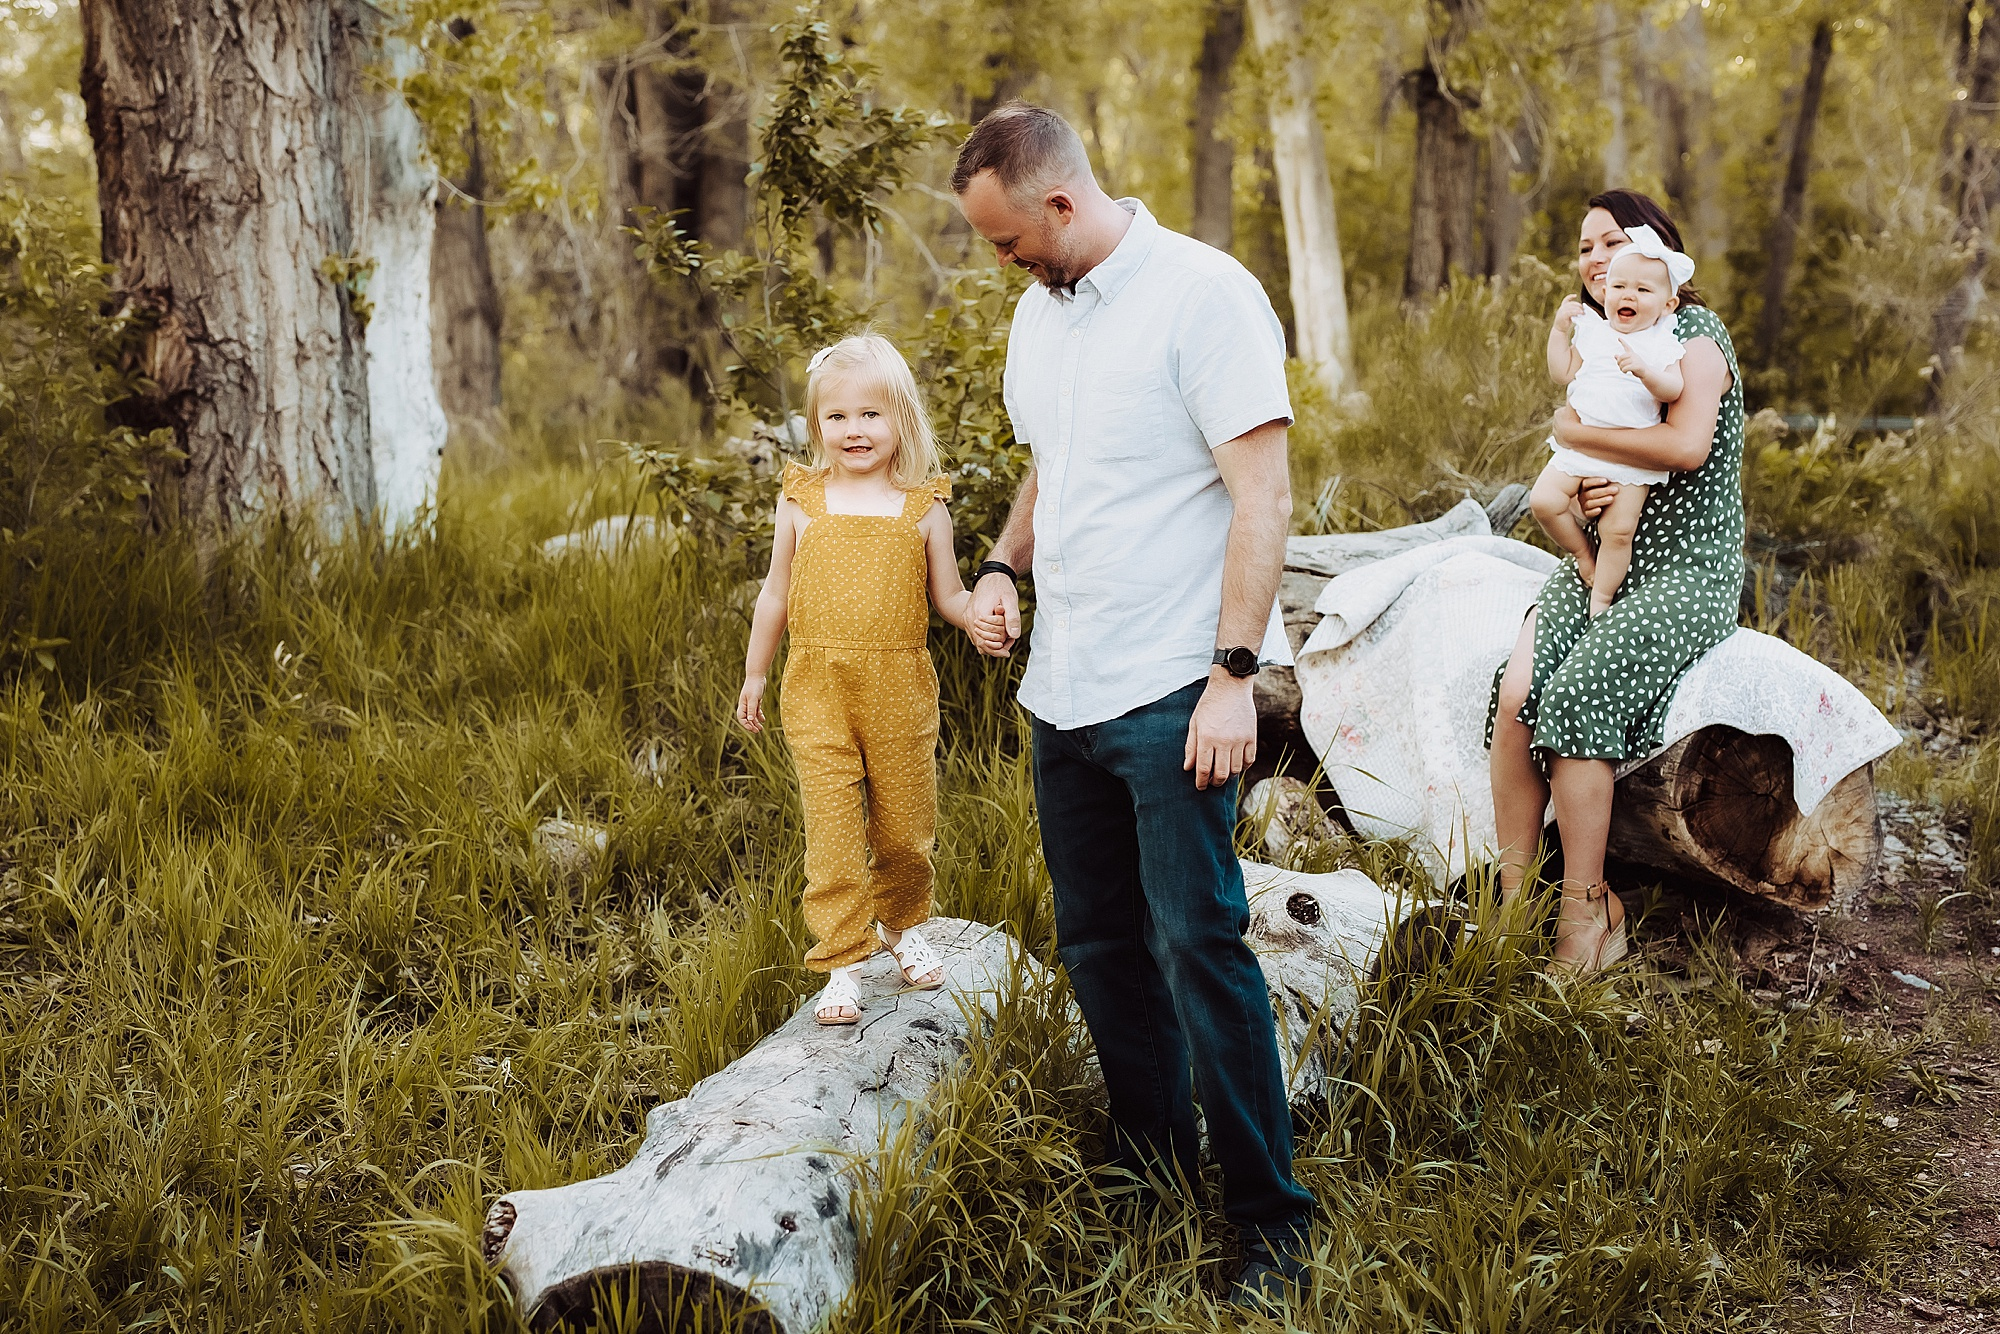 Outdoor Family Photos in Lakewood | www.julielivermorephotography.com